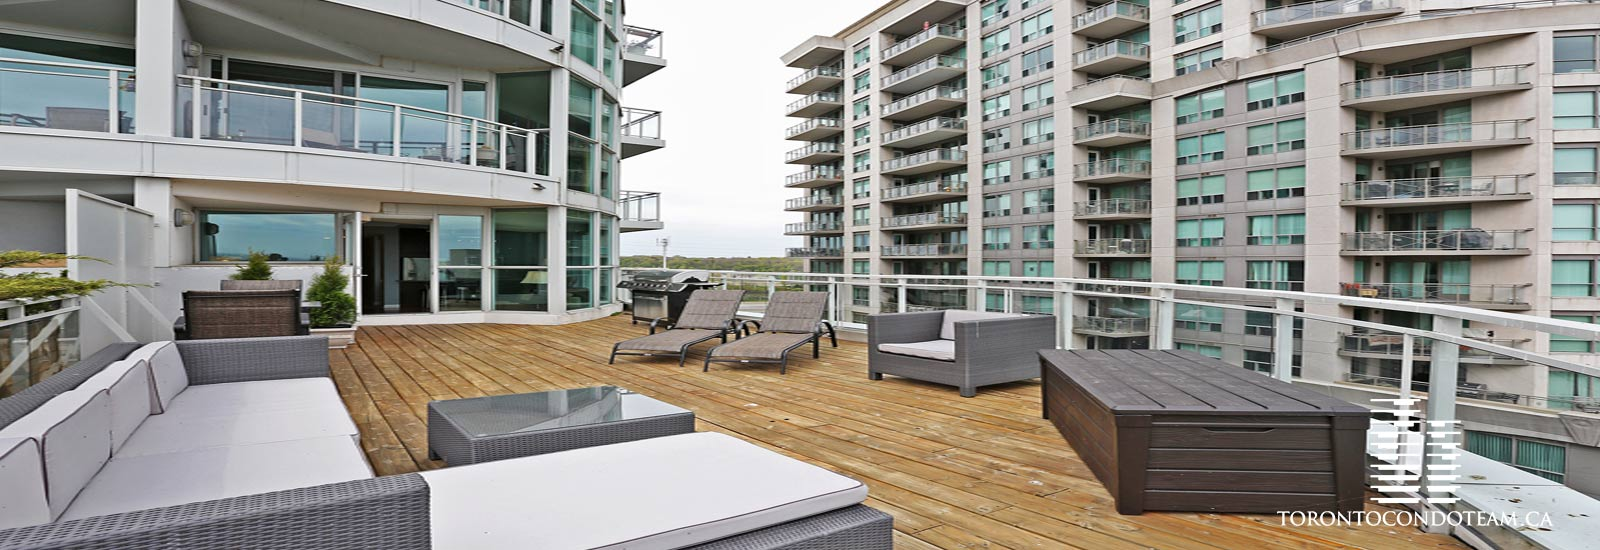 2067 Lakeshore Boulevard West Condos For Sale